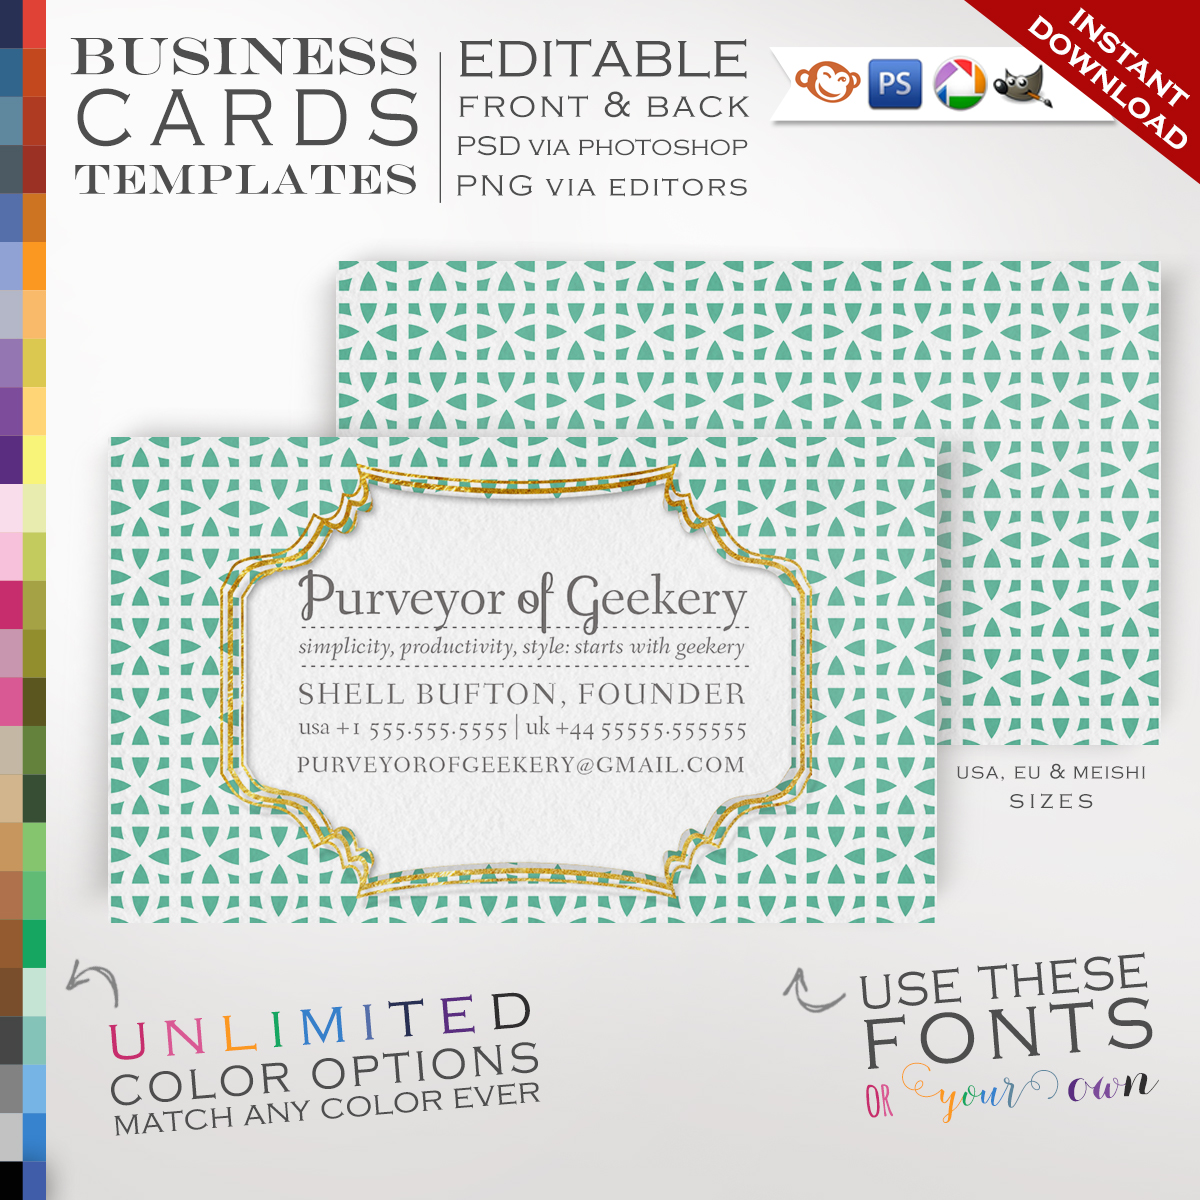 Avery Business Card Template Photoshop